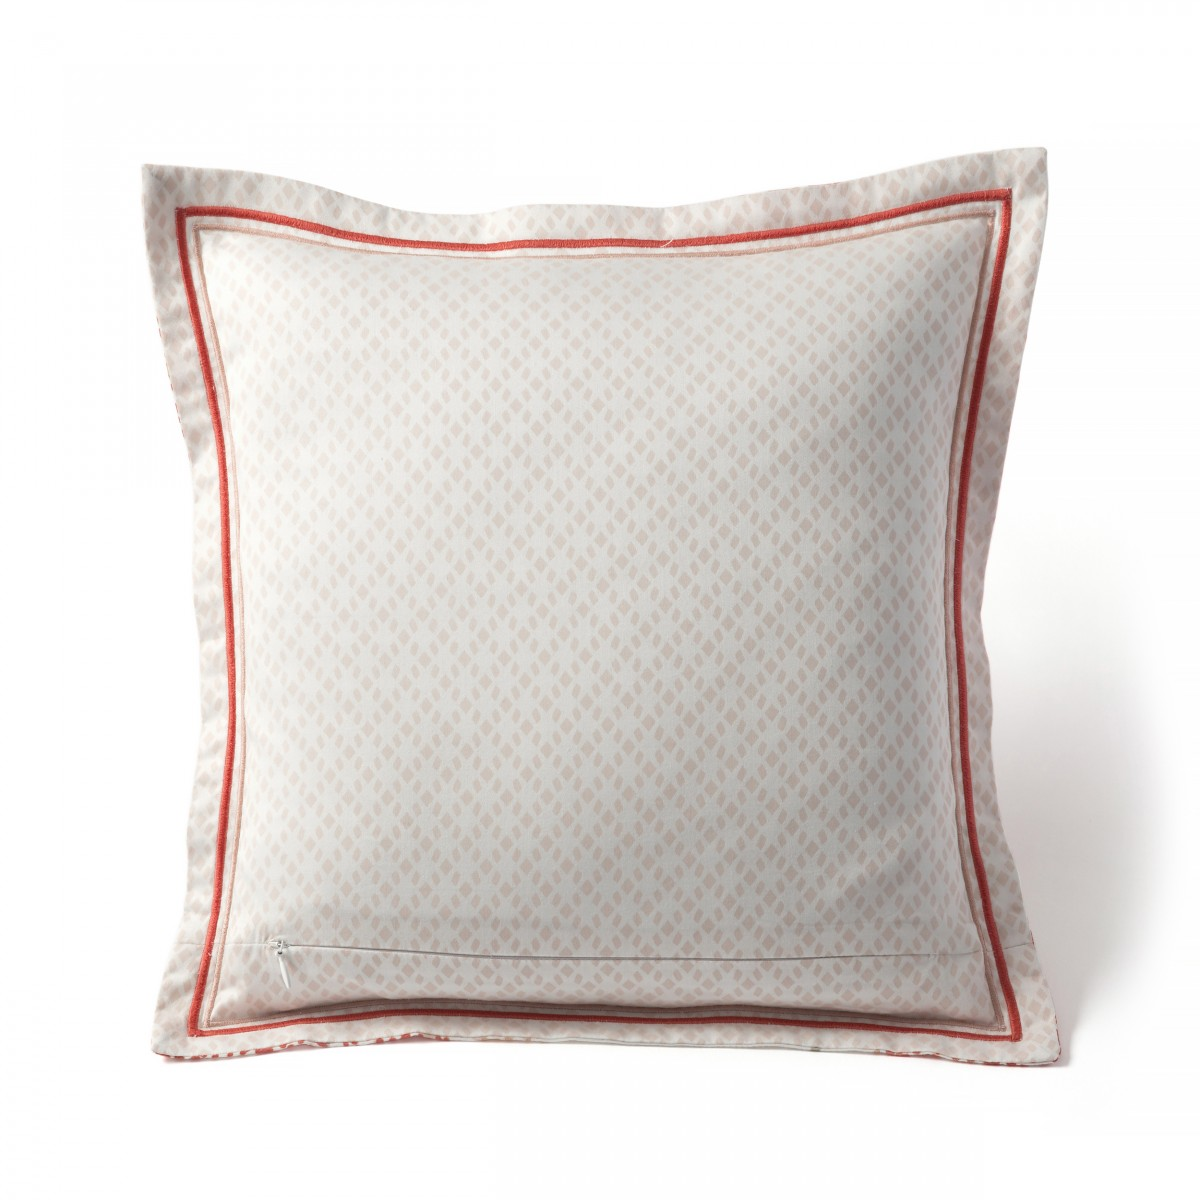 Fitted sheet Evanescence | Bed linen | Tradition des Vosges